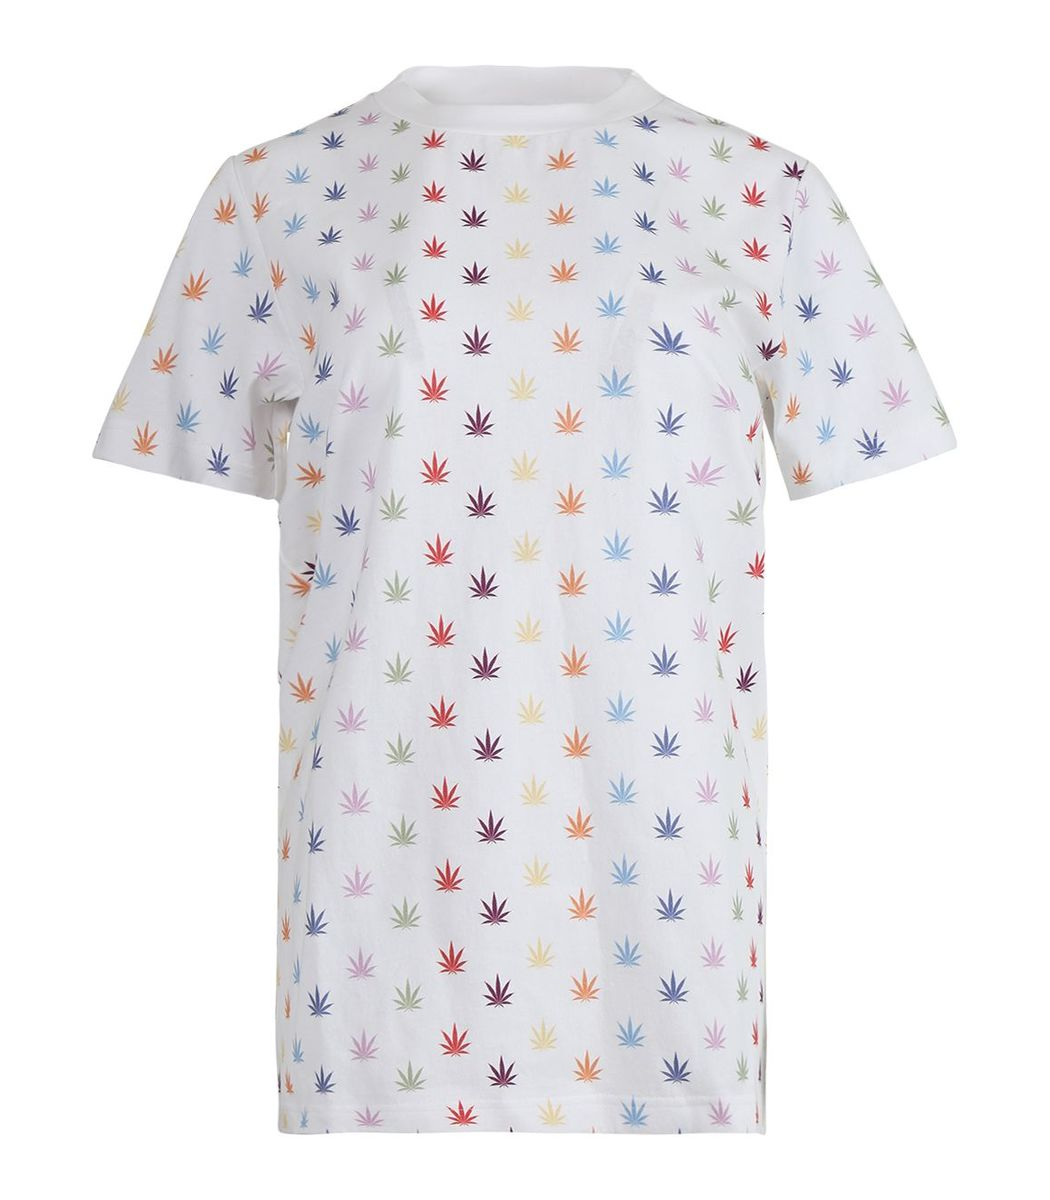 Lhd X Adam Lippes Weed T-shirt, White